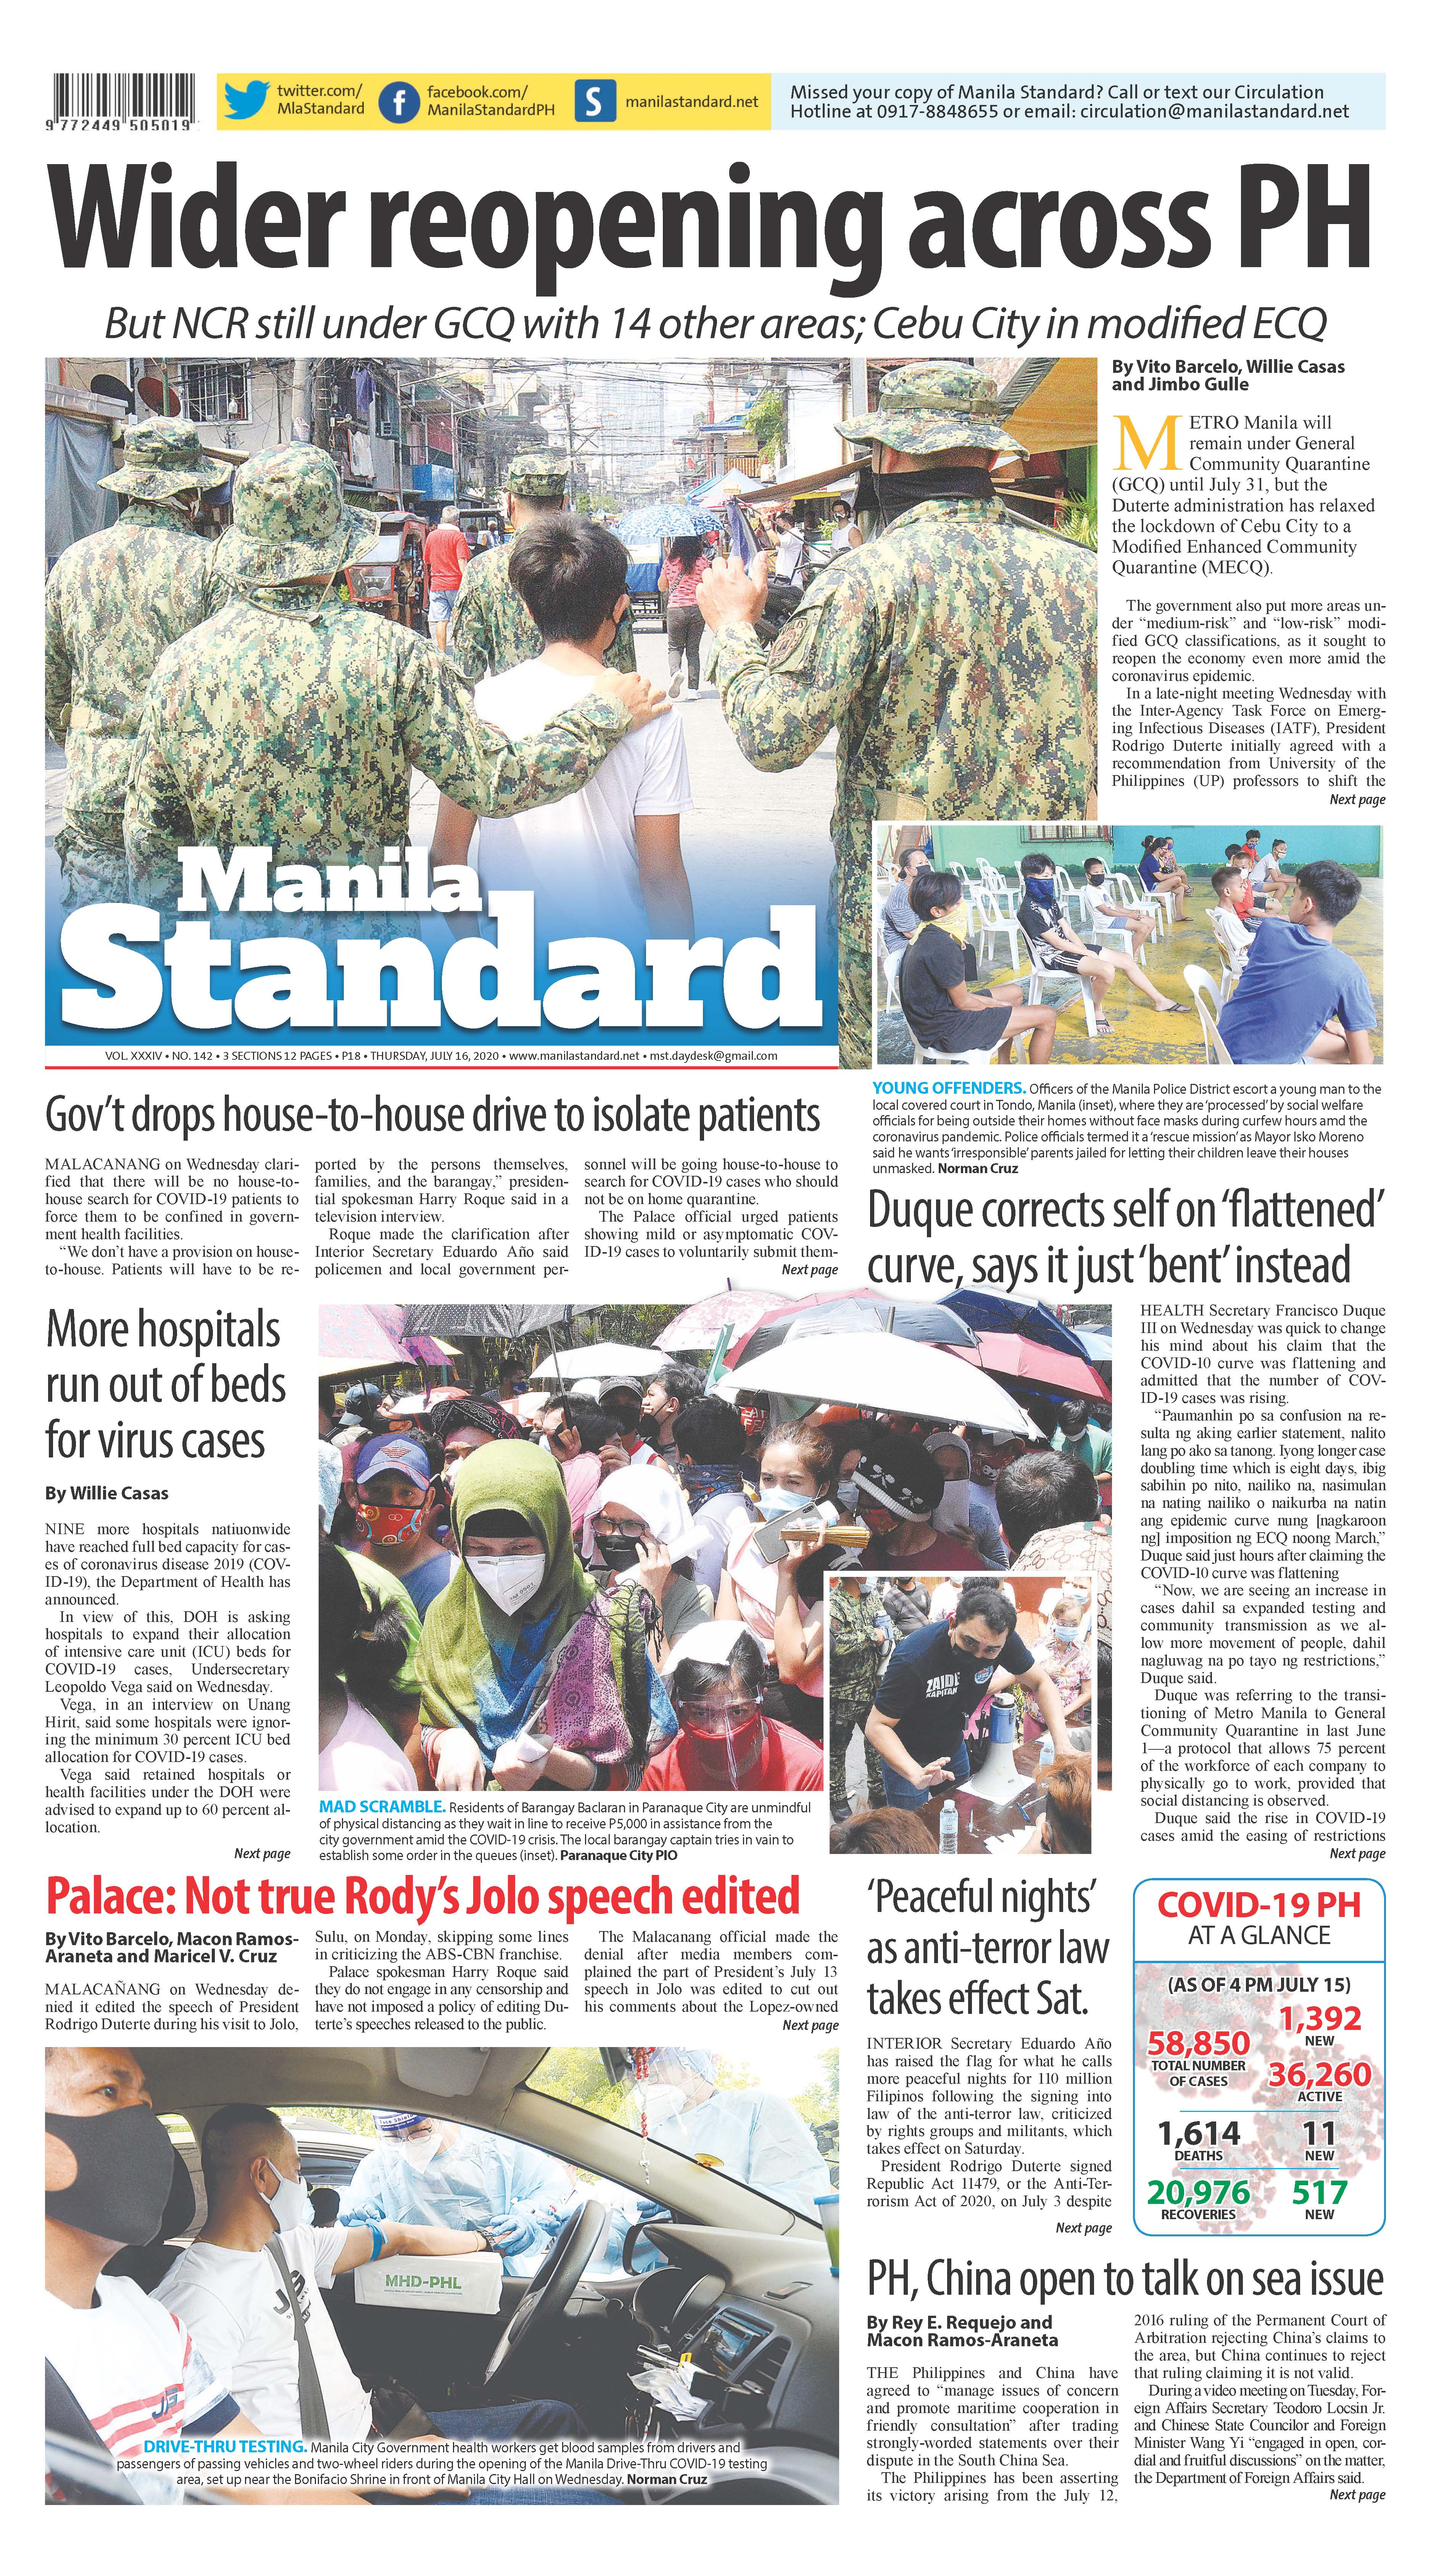 Thursday Print Edition (7/16/2020)